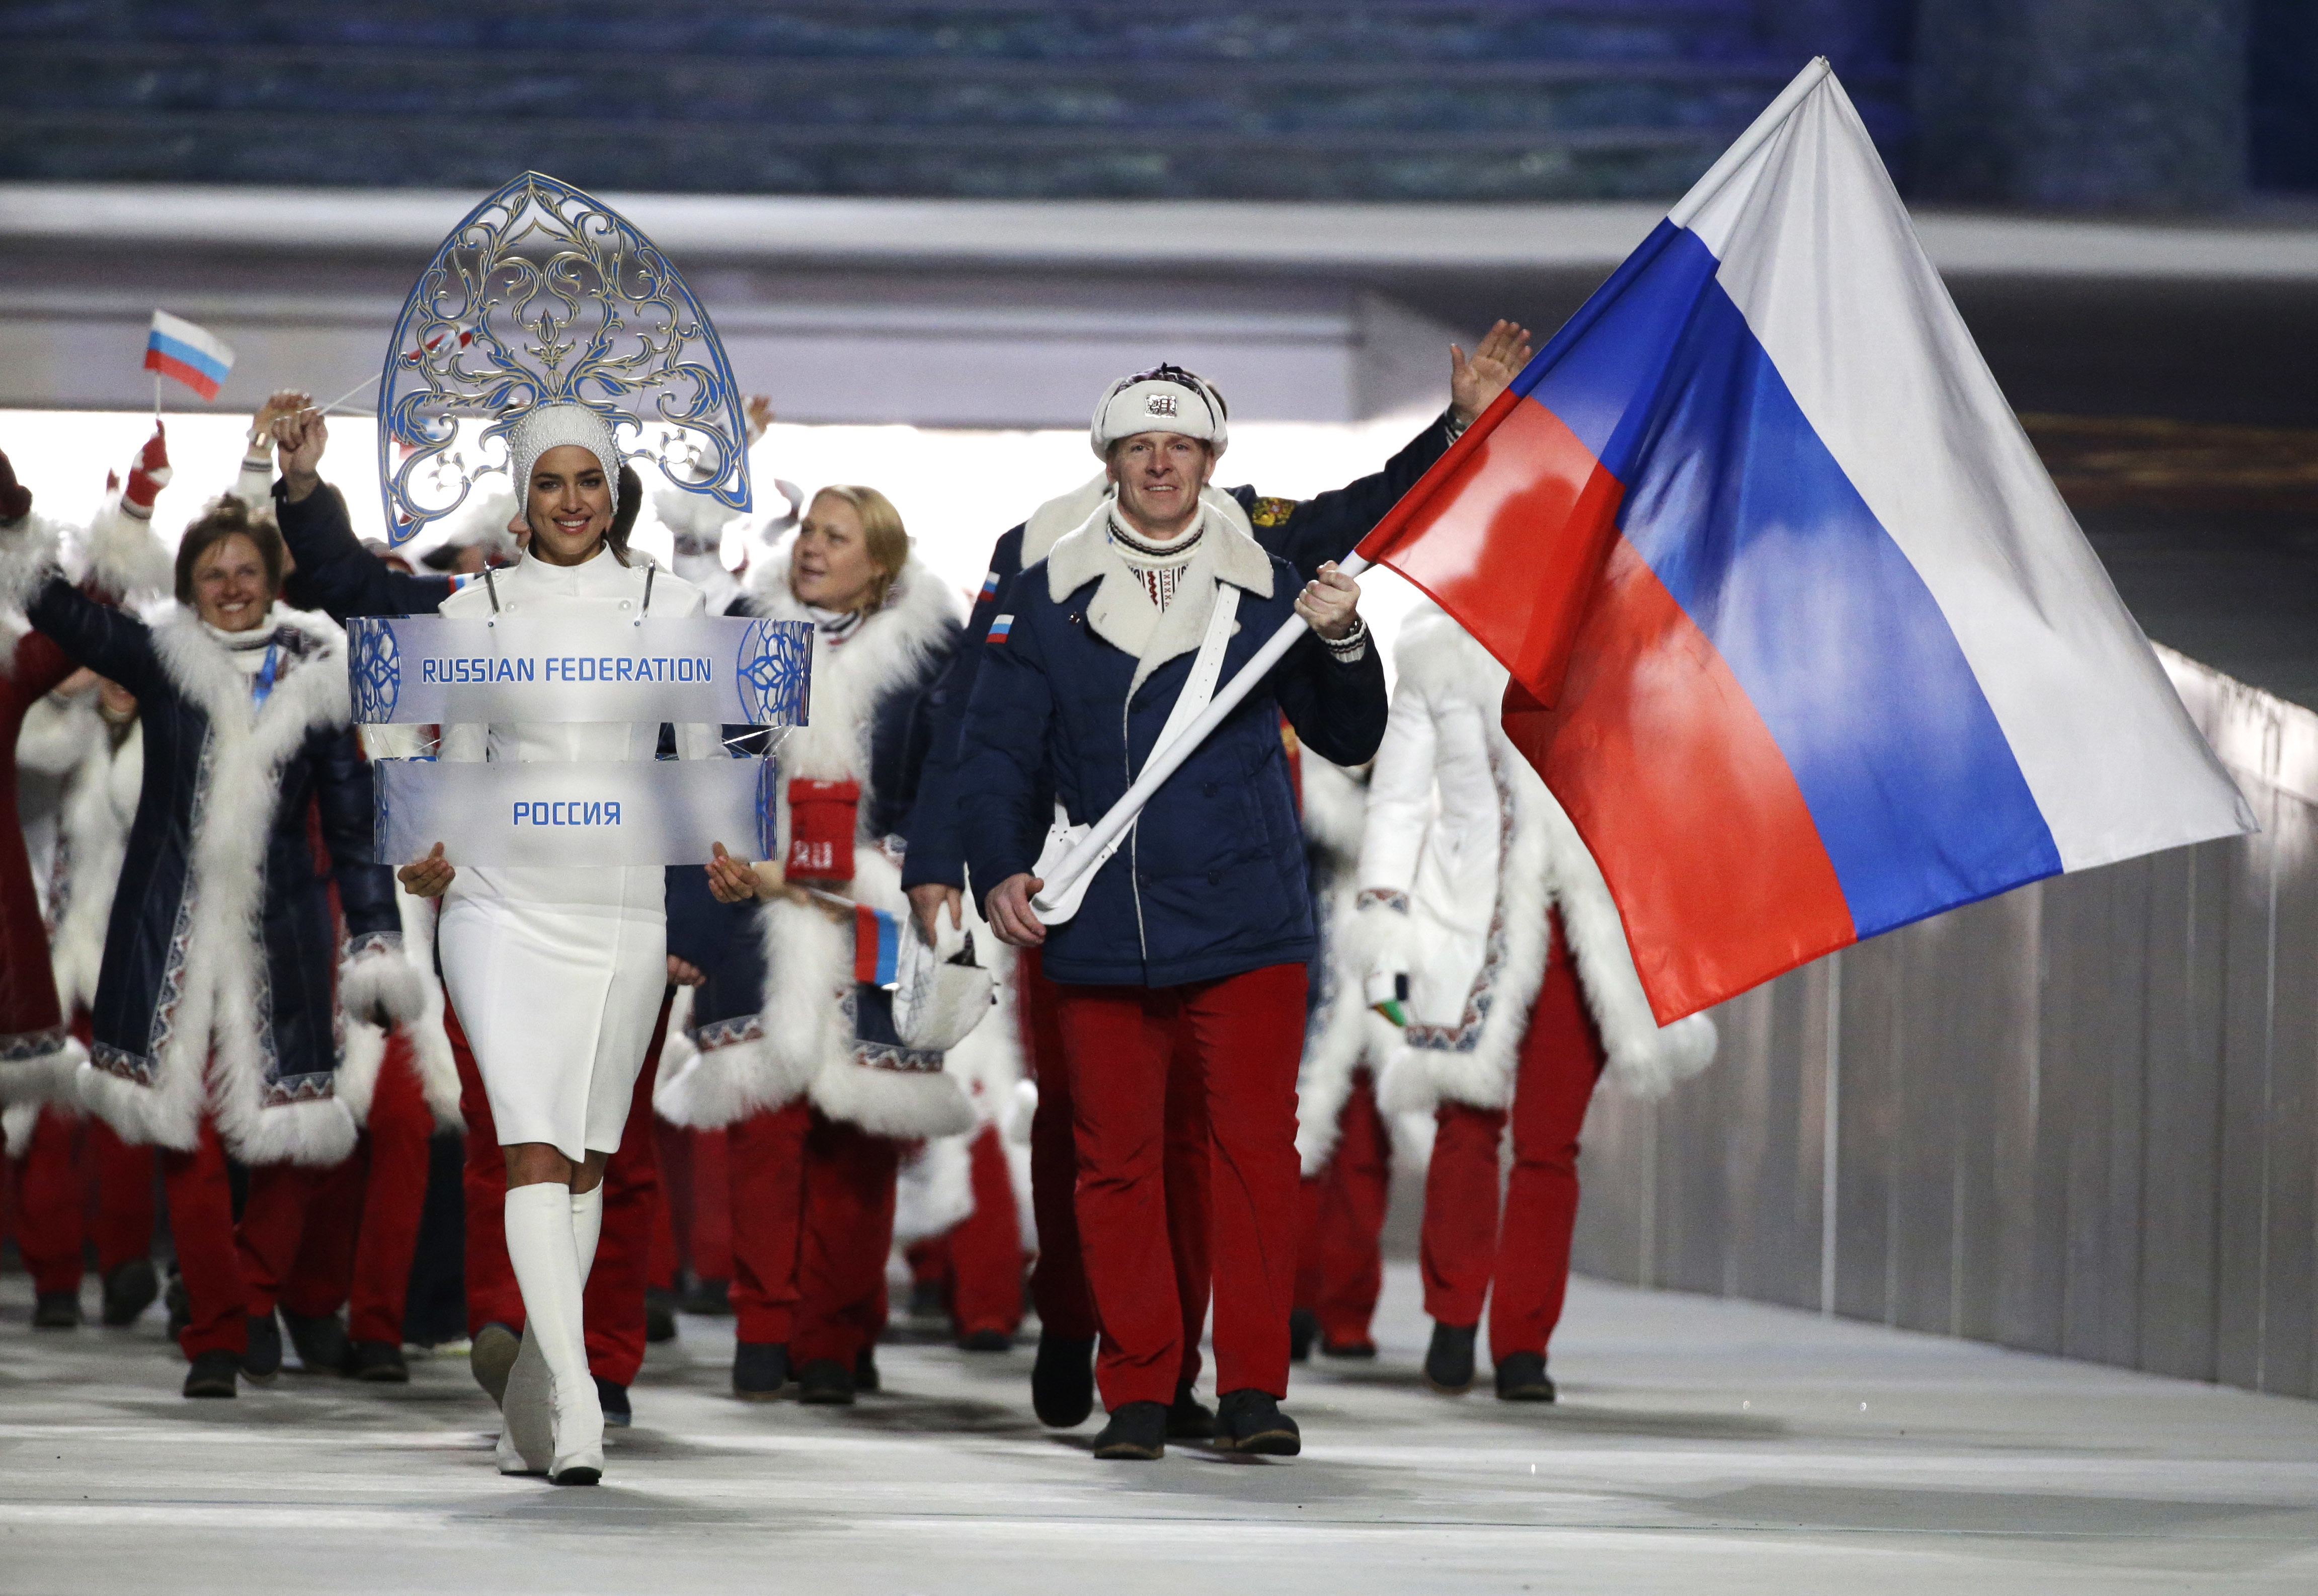 FILE - In this Feb. 7, 2014 file photo Alexander Zubkov of Russia carries the national flag as he leads the team during the opening ceremony of the 2014 Winter Olympics in Sochi, Russia. The Olympic world is bracing for more evidence of systematic Russian